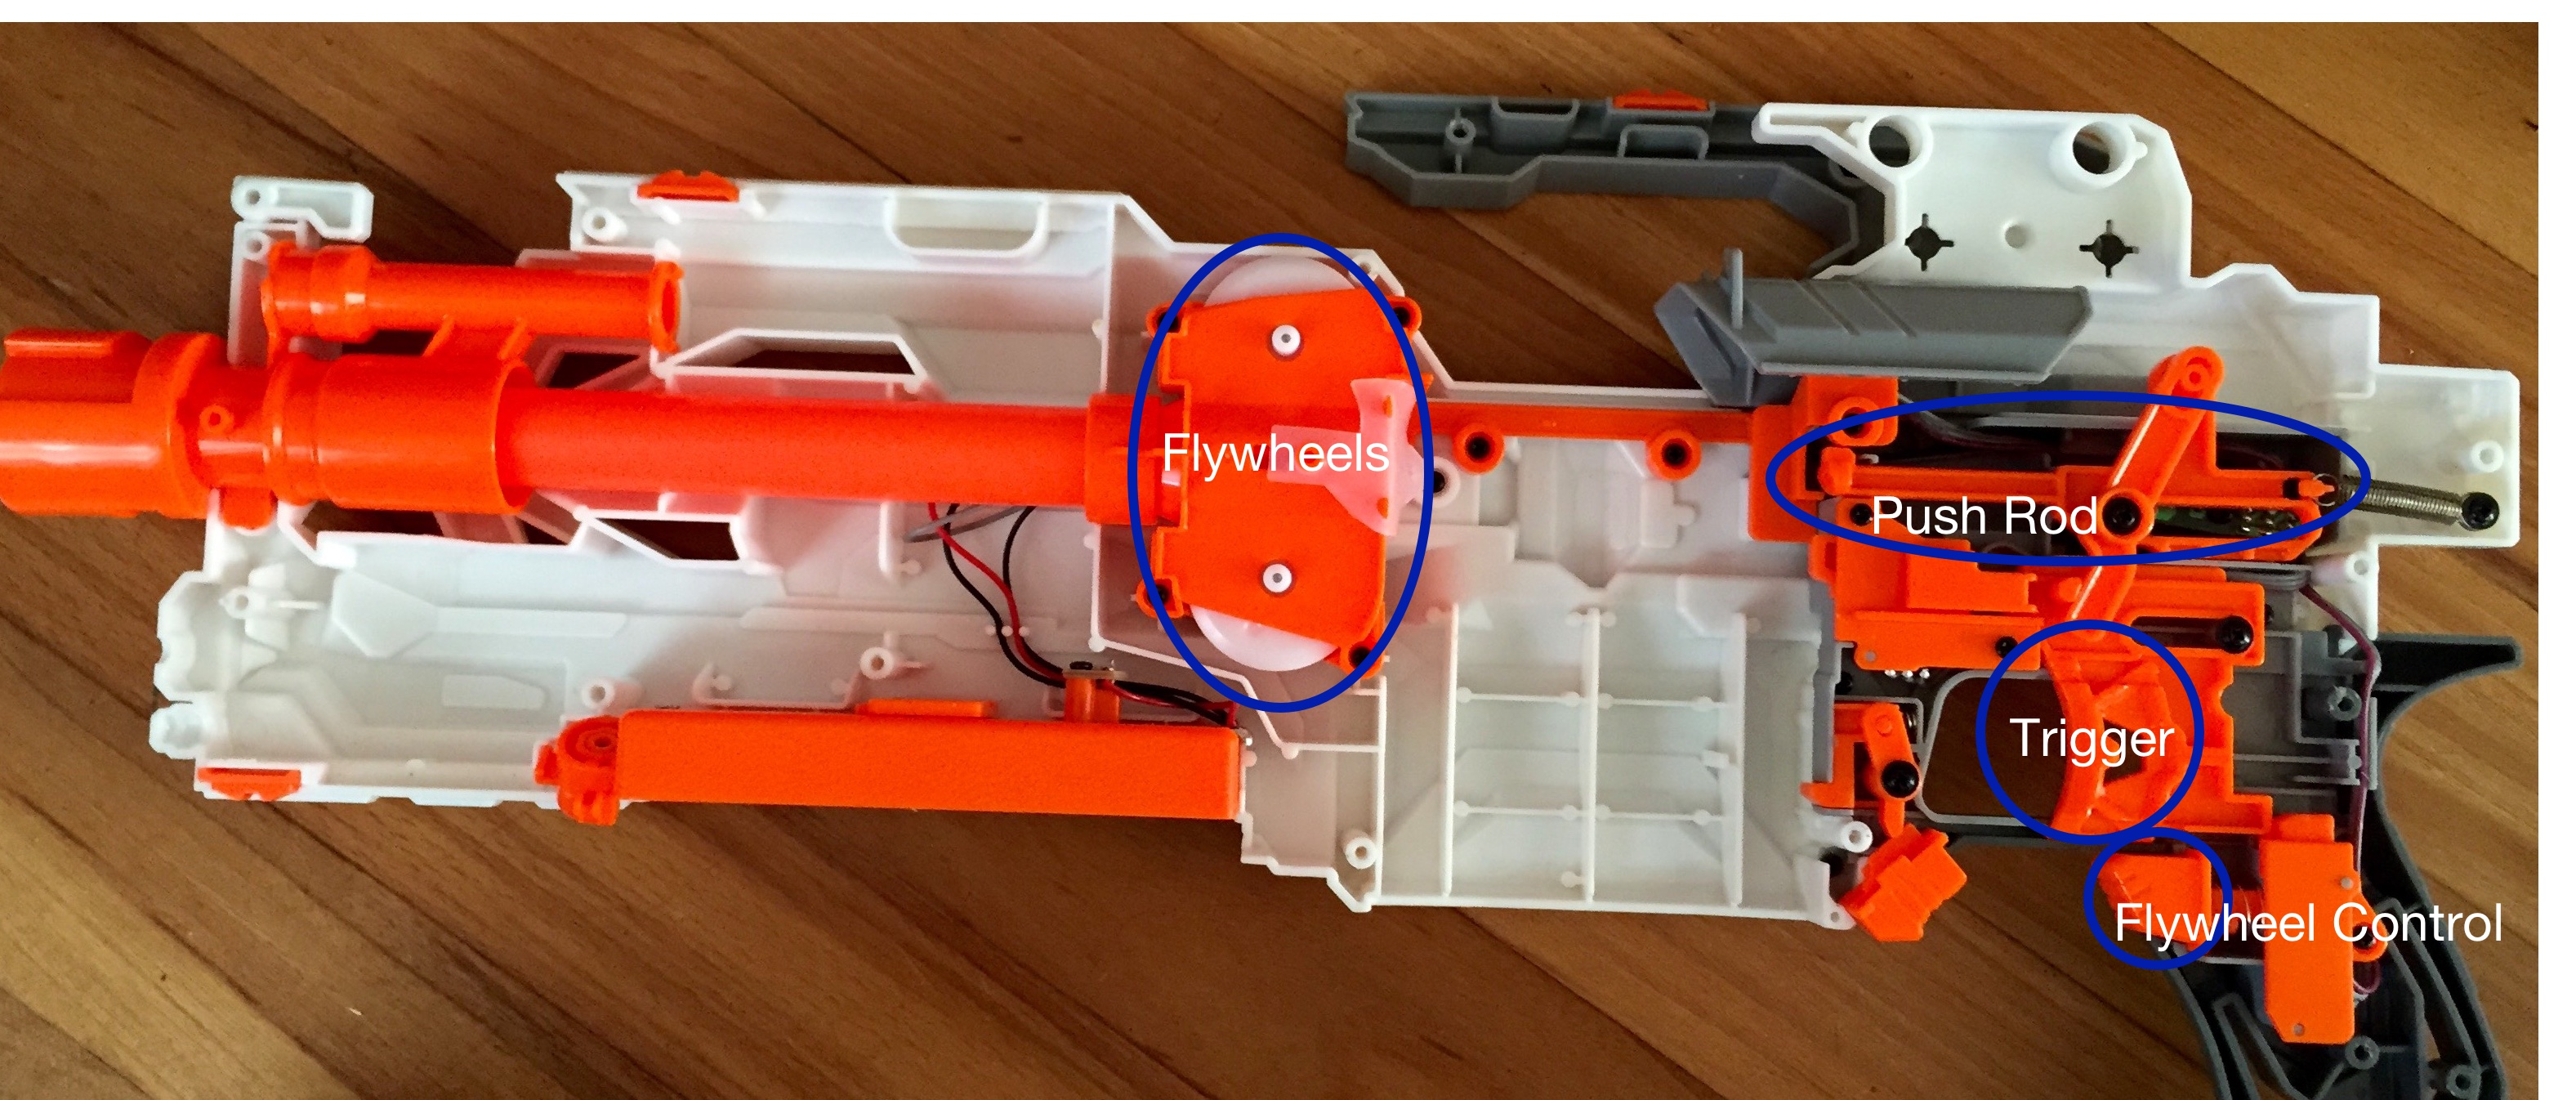 Connect All the Things: An IoT Nerf Gun – The AppsLab on